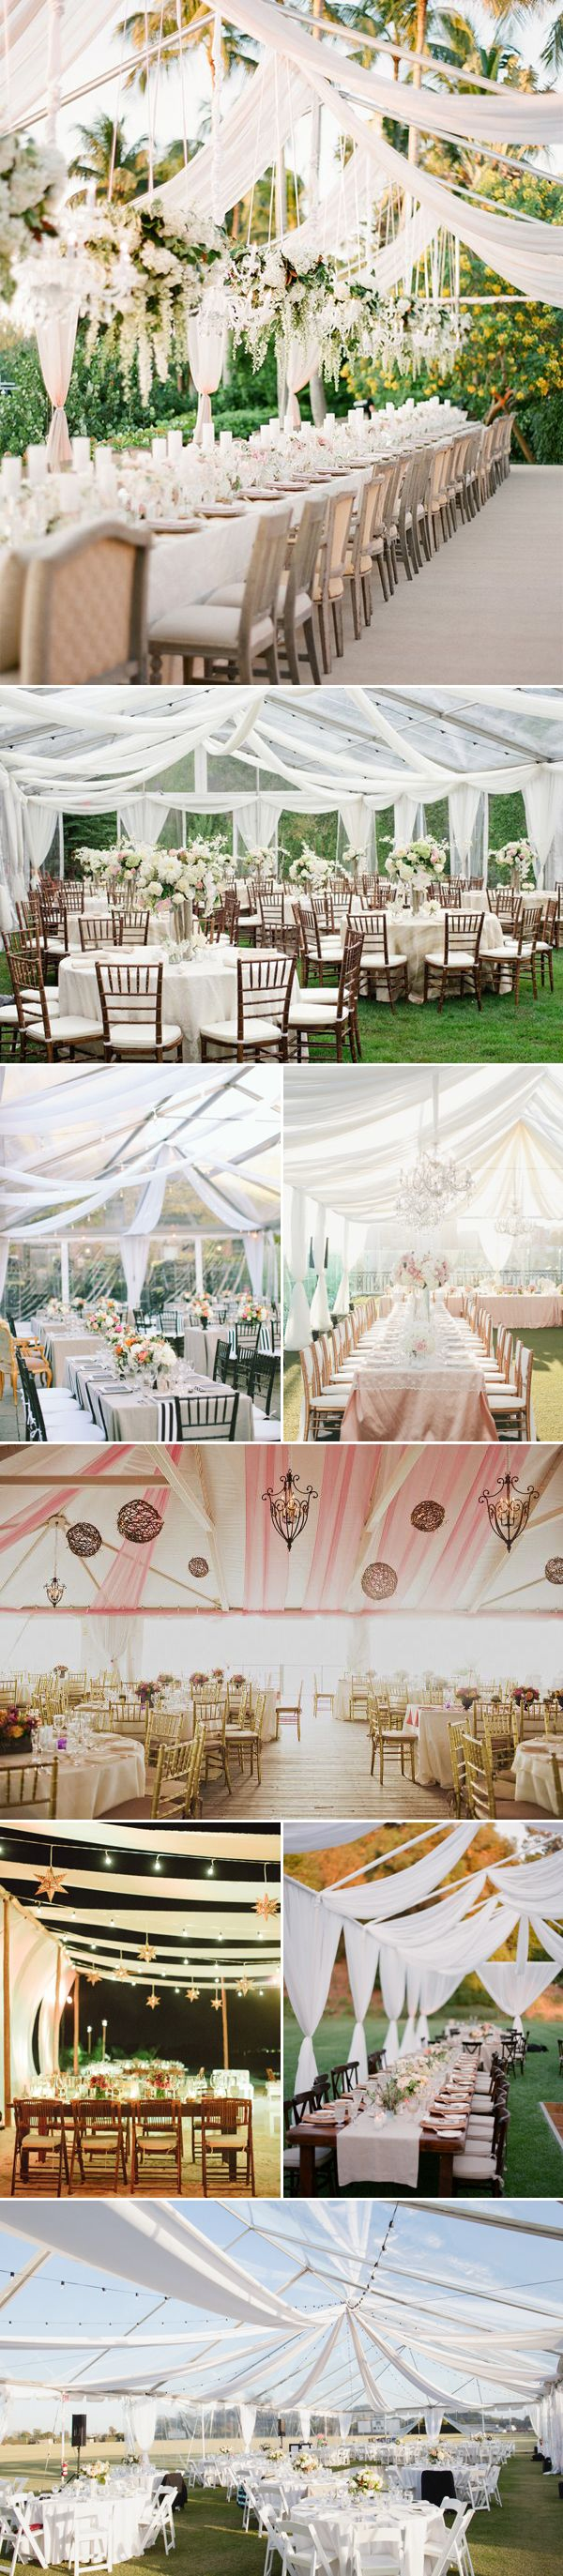 best 10+ white tent wedding ideas on pinterest | wedding tent